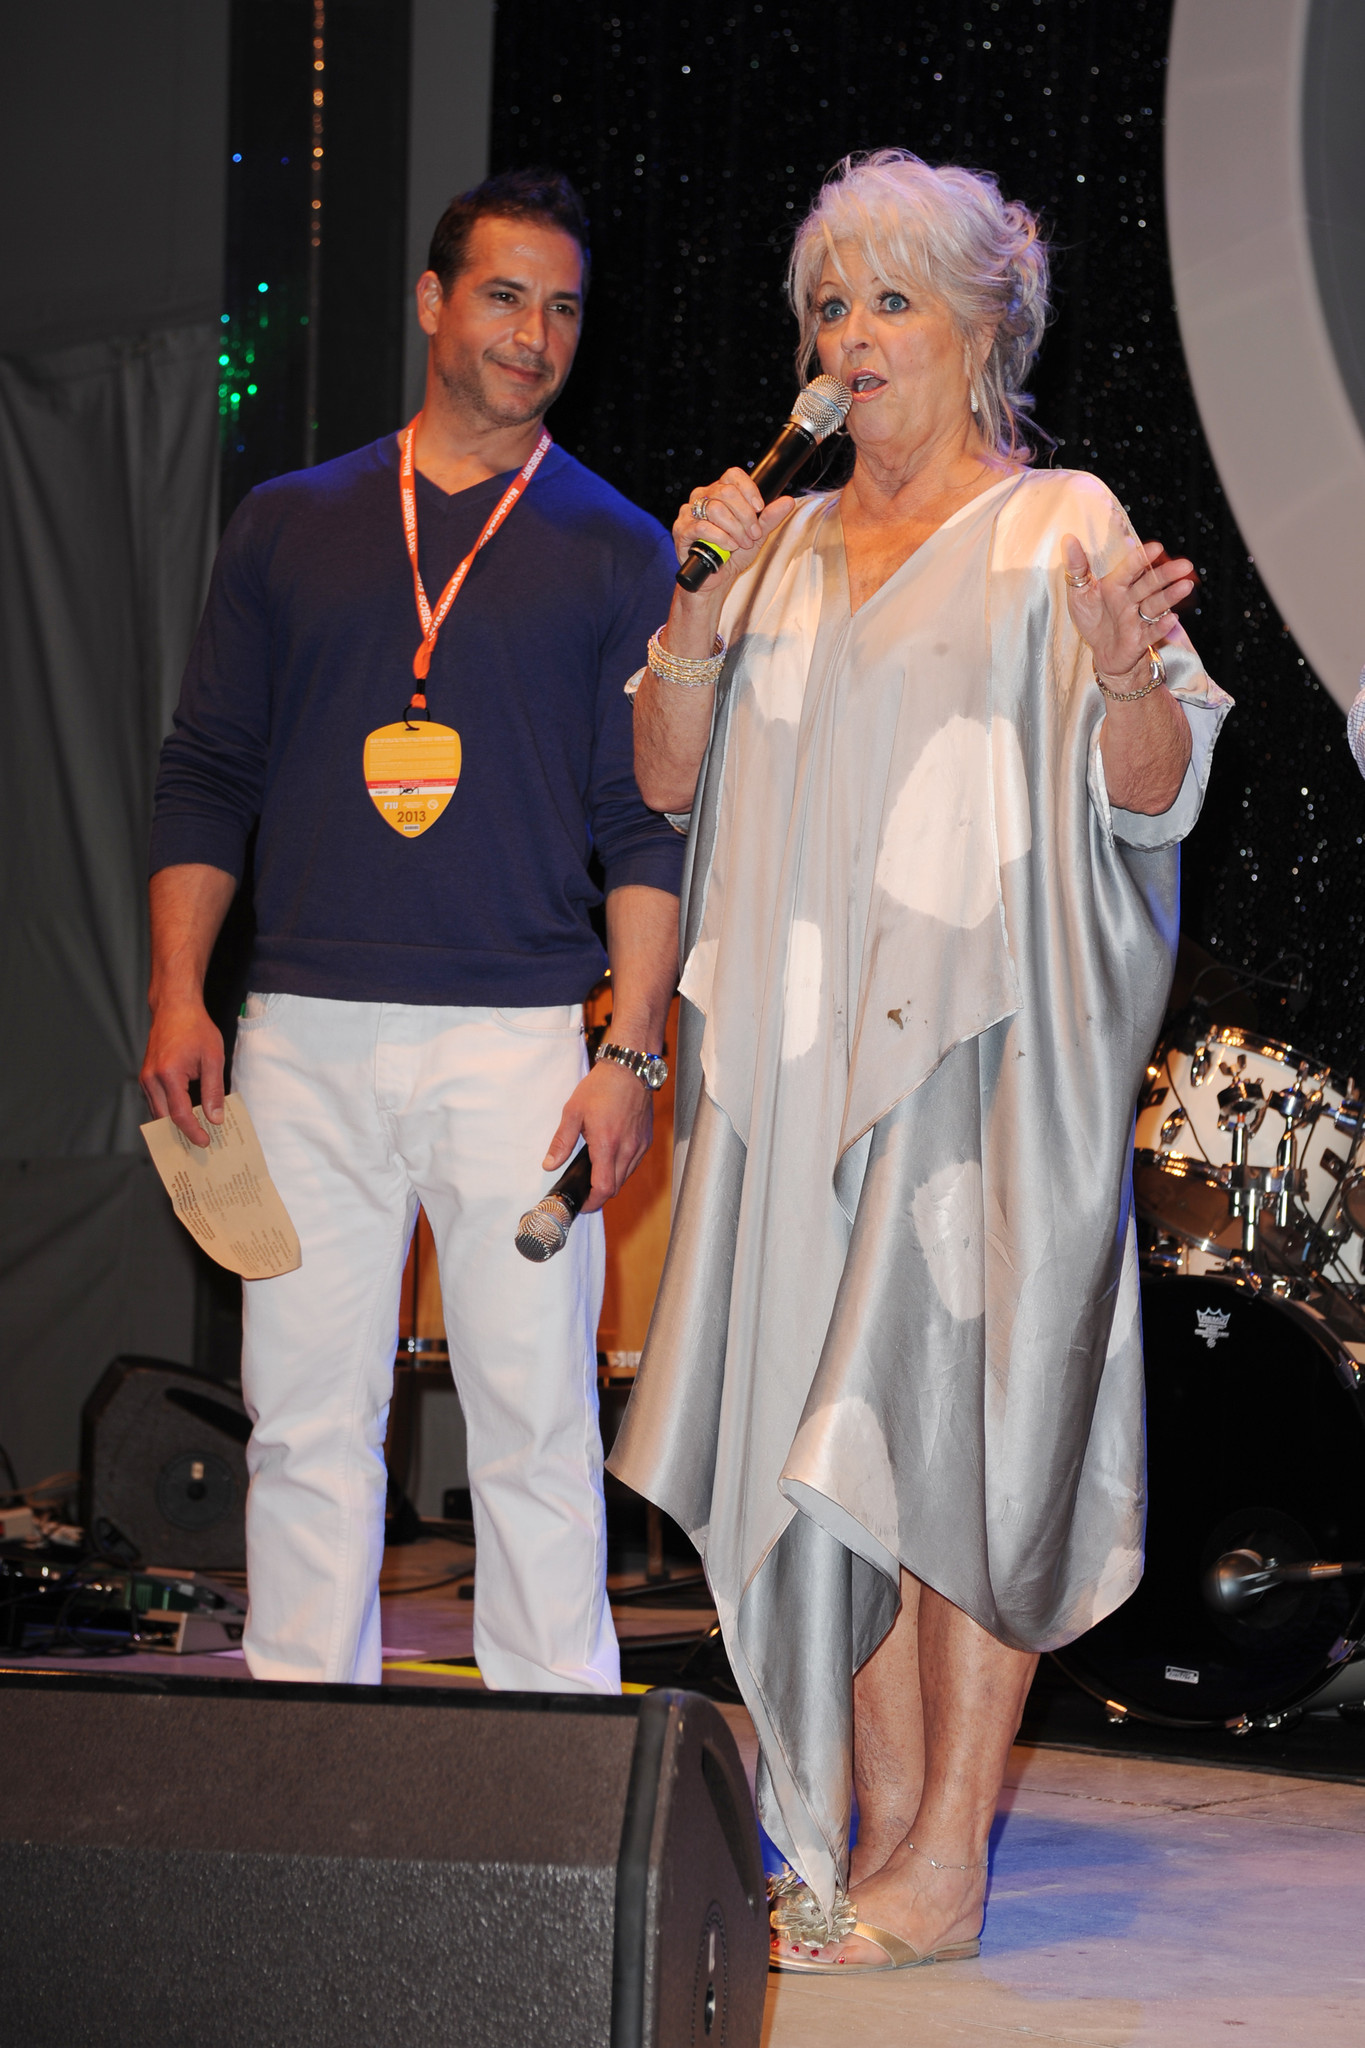 Celeb-spotting at SoBe Wine and Food Festival - SBWFF 2013 - The Q hosted by Paula Deen and Sons